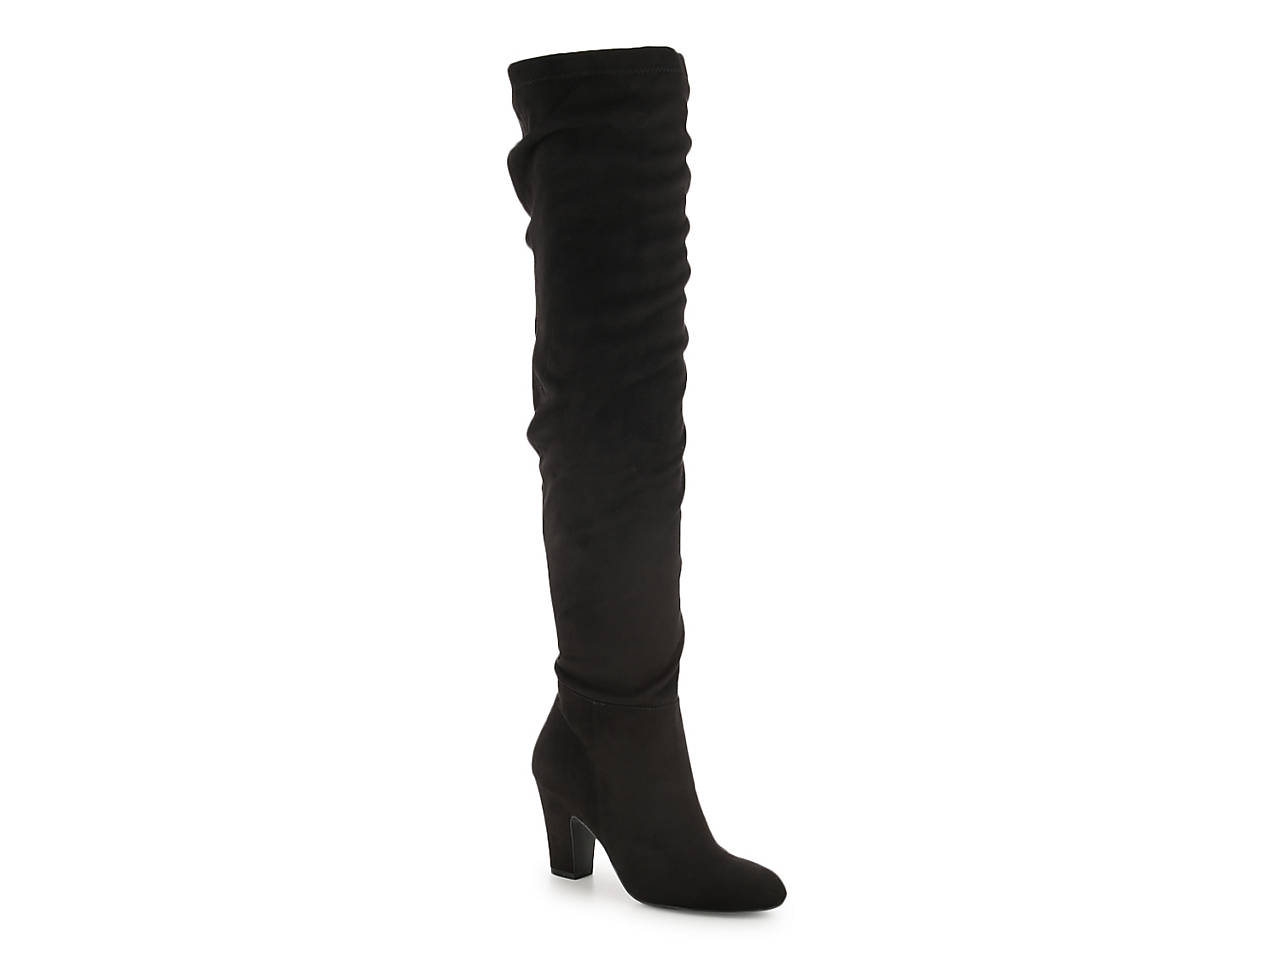 d733cc0a8395 Chinese Laundry Bailey Over The Knee Boot Women s Shoes